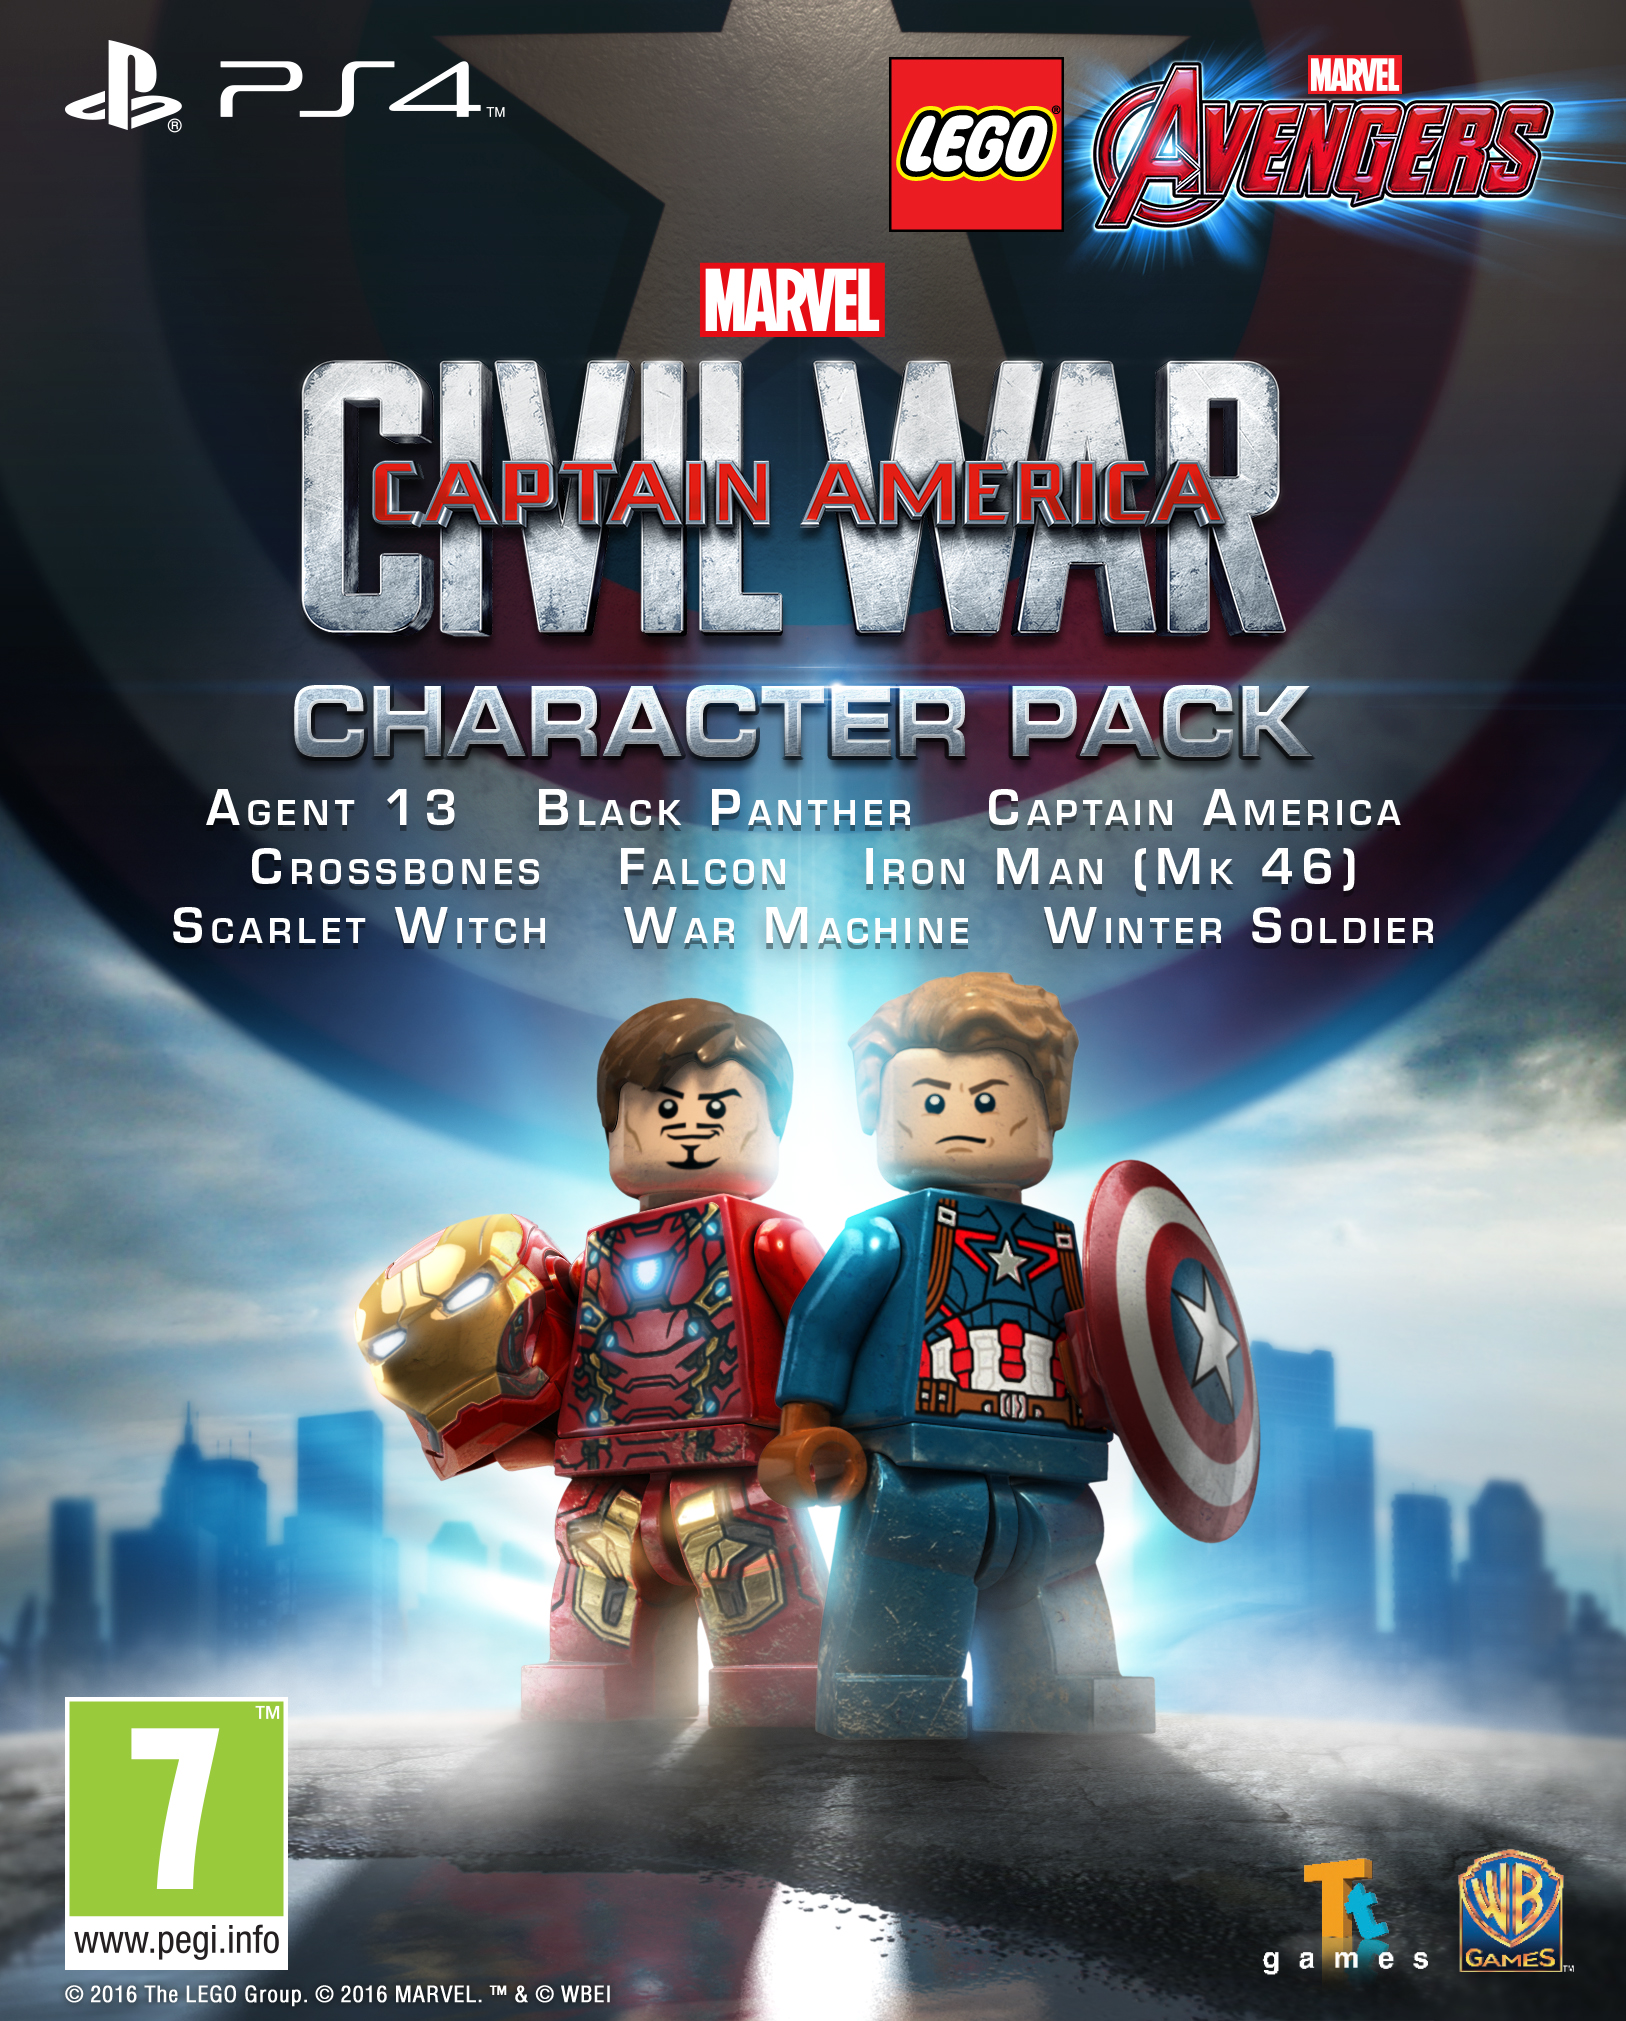 LEGO Marvel's Avengers Character Pack Captain America Civil War